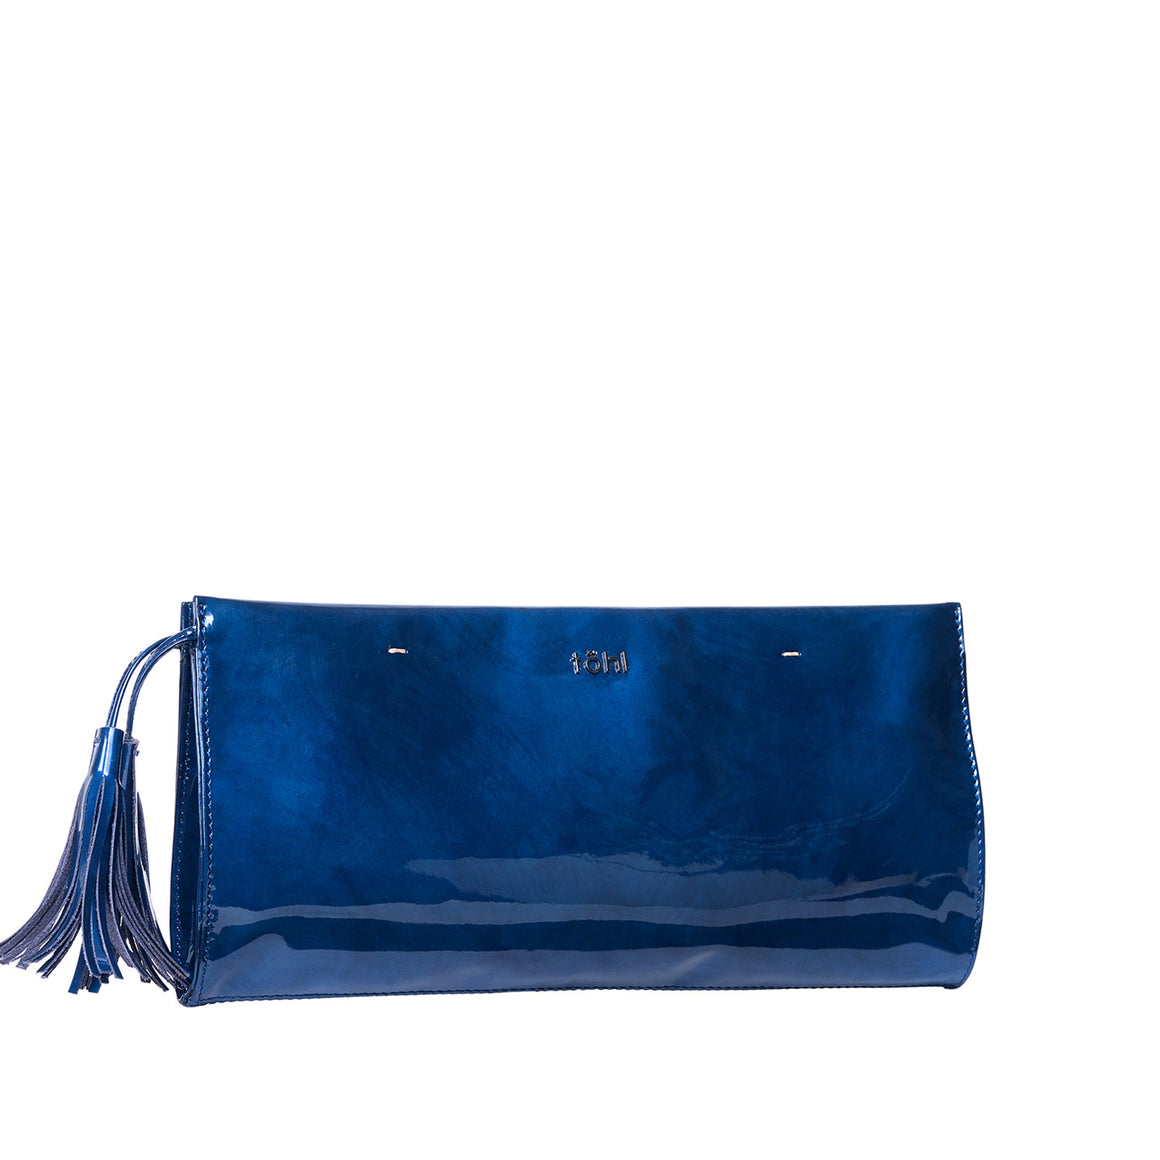 CH 0005 - TOHL DEMI WOMEN'S TASSELLED GRIP CLUTCH - PATENT NAVY